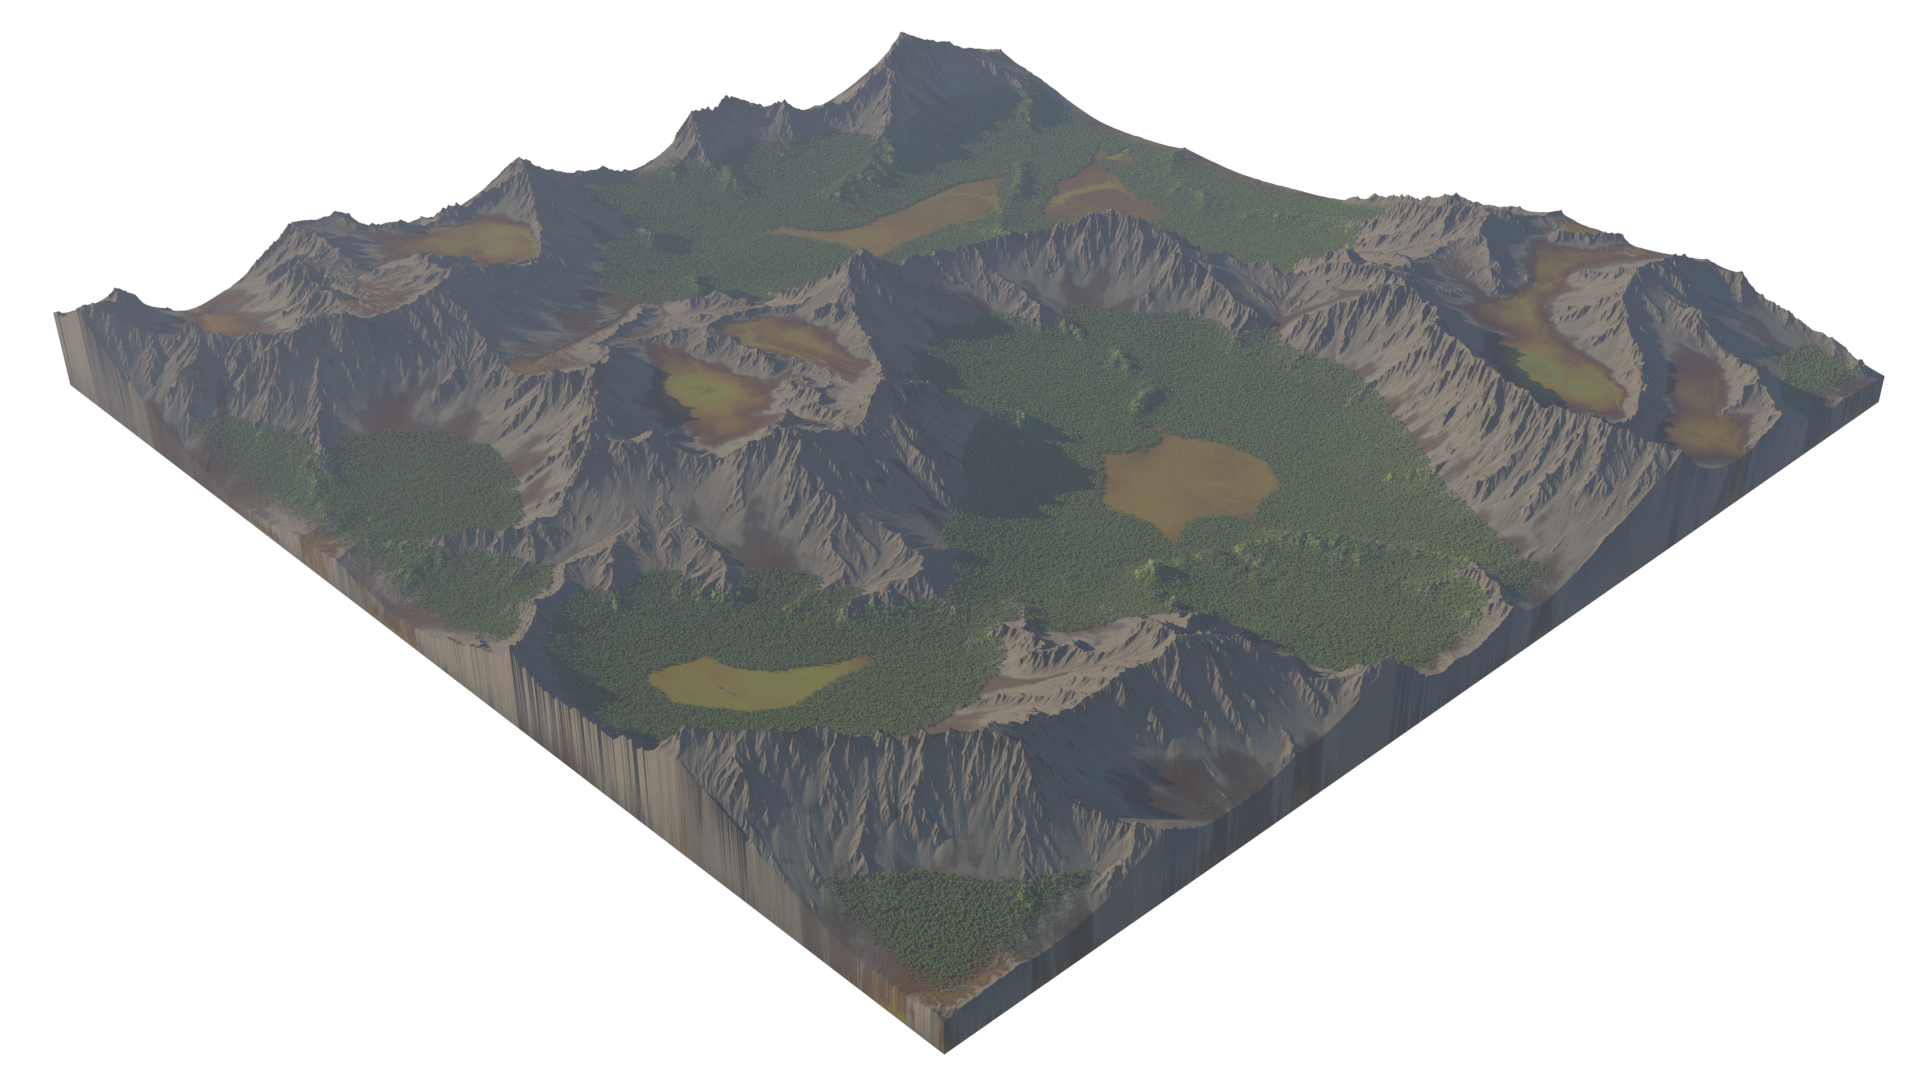 Mountainswithgrass_03_